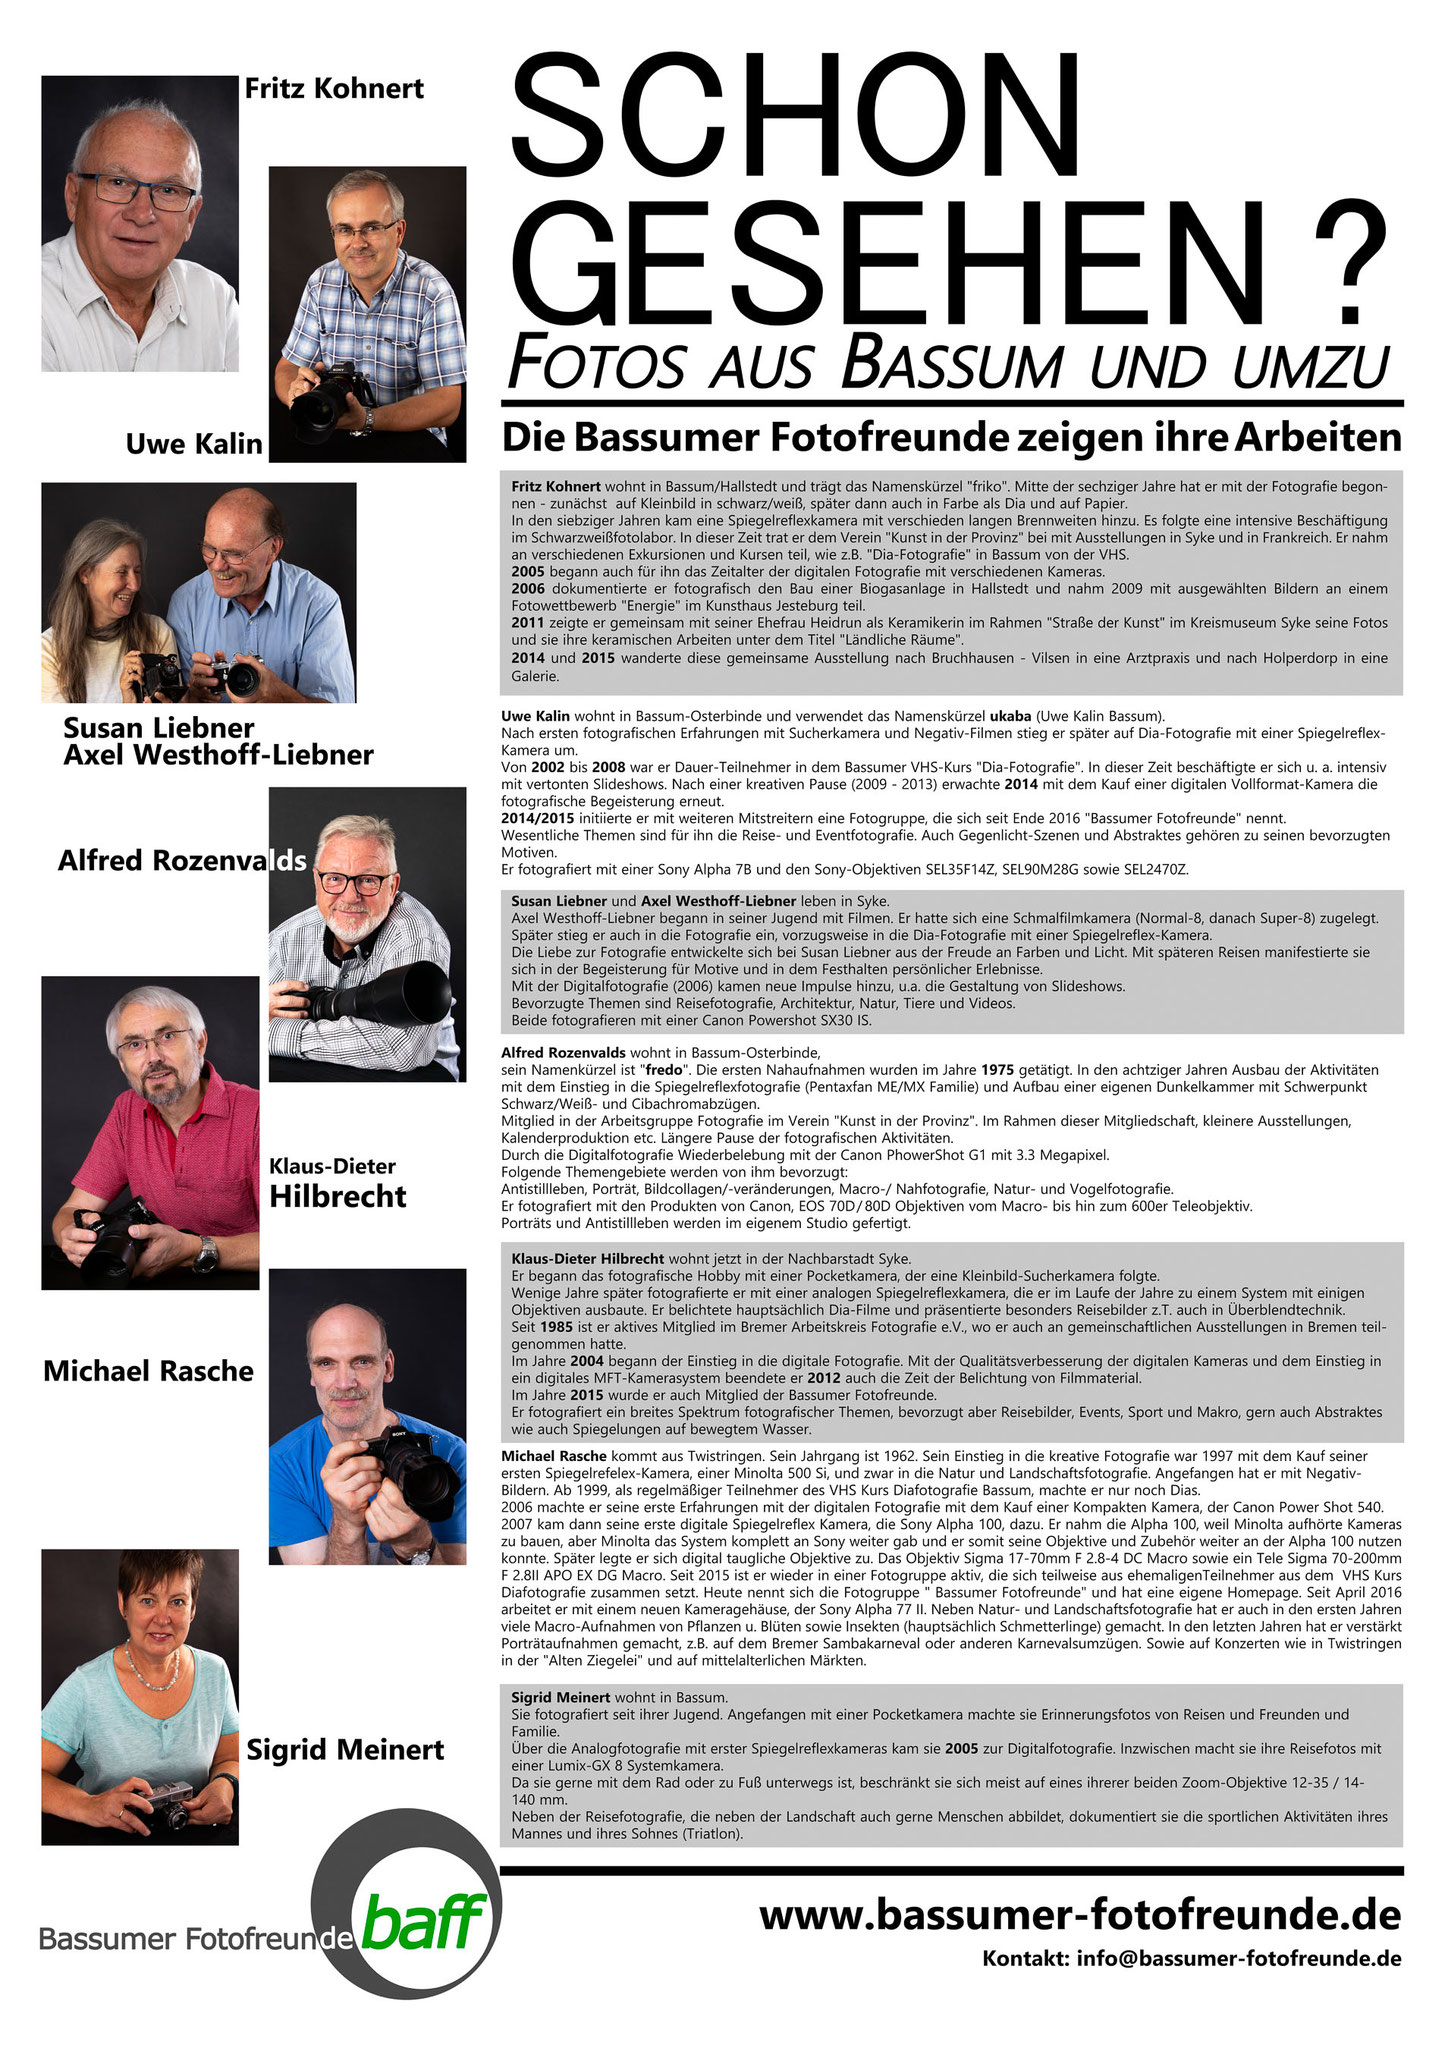 Fotos und Layout: Alfred Rozenvalds